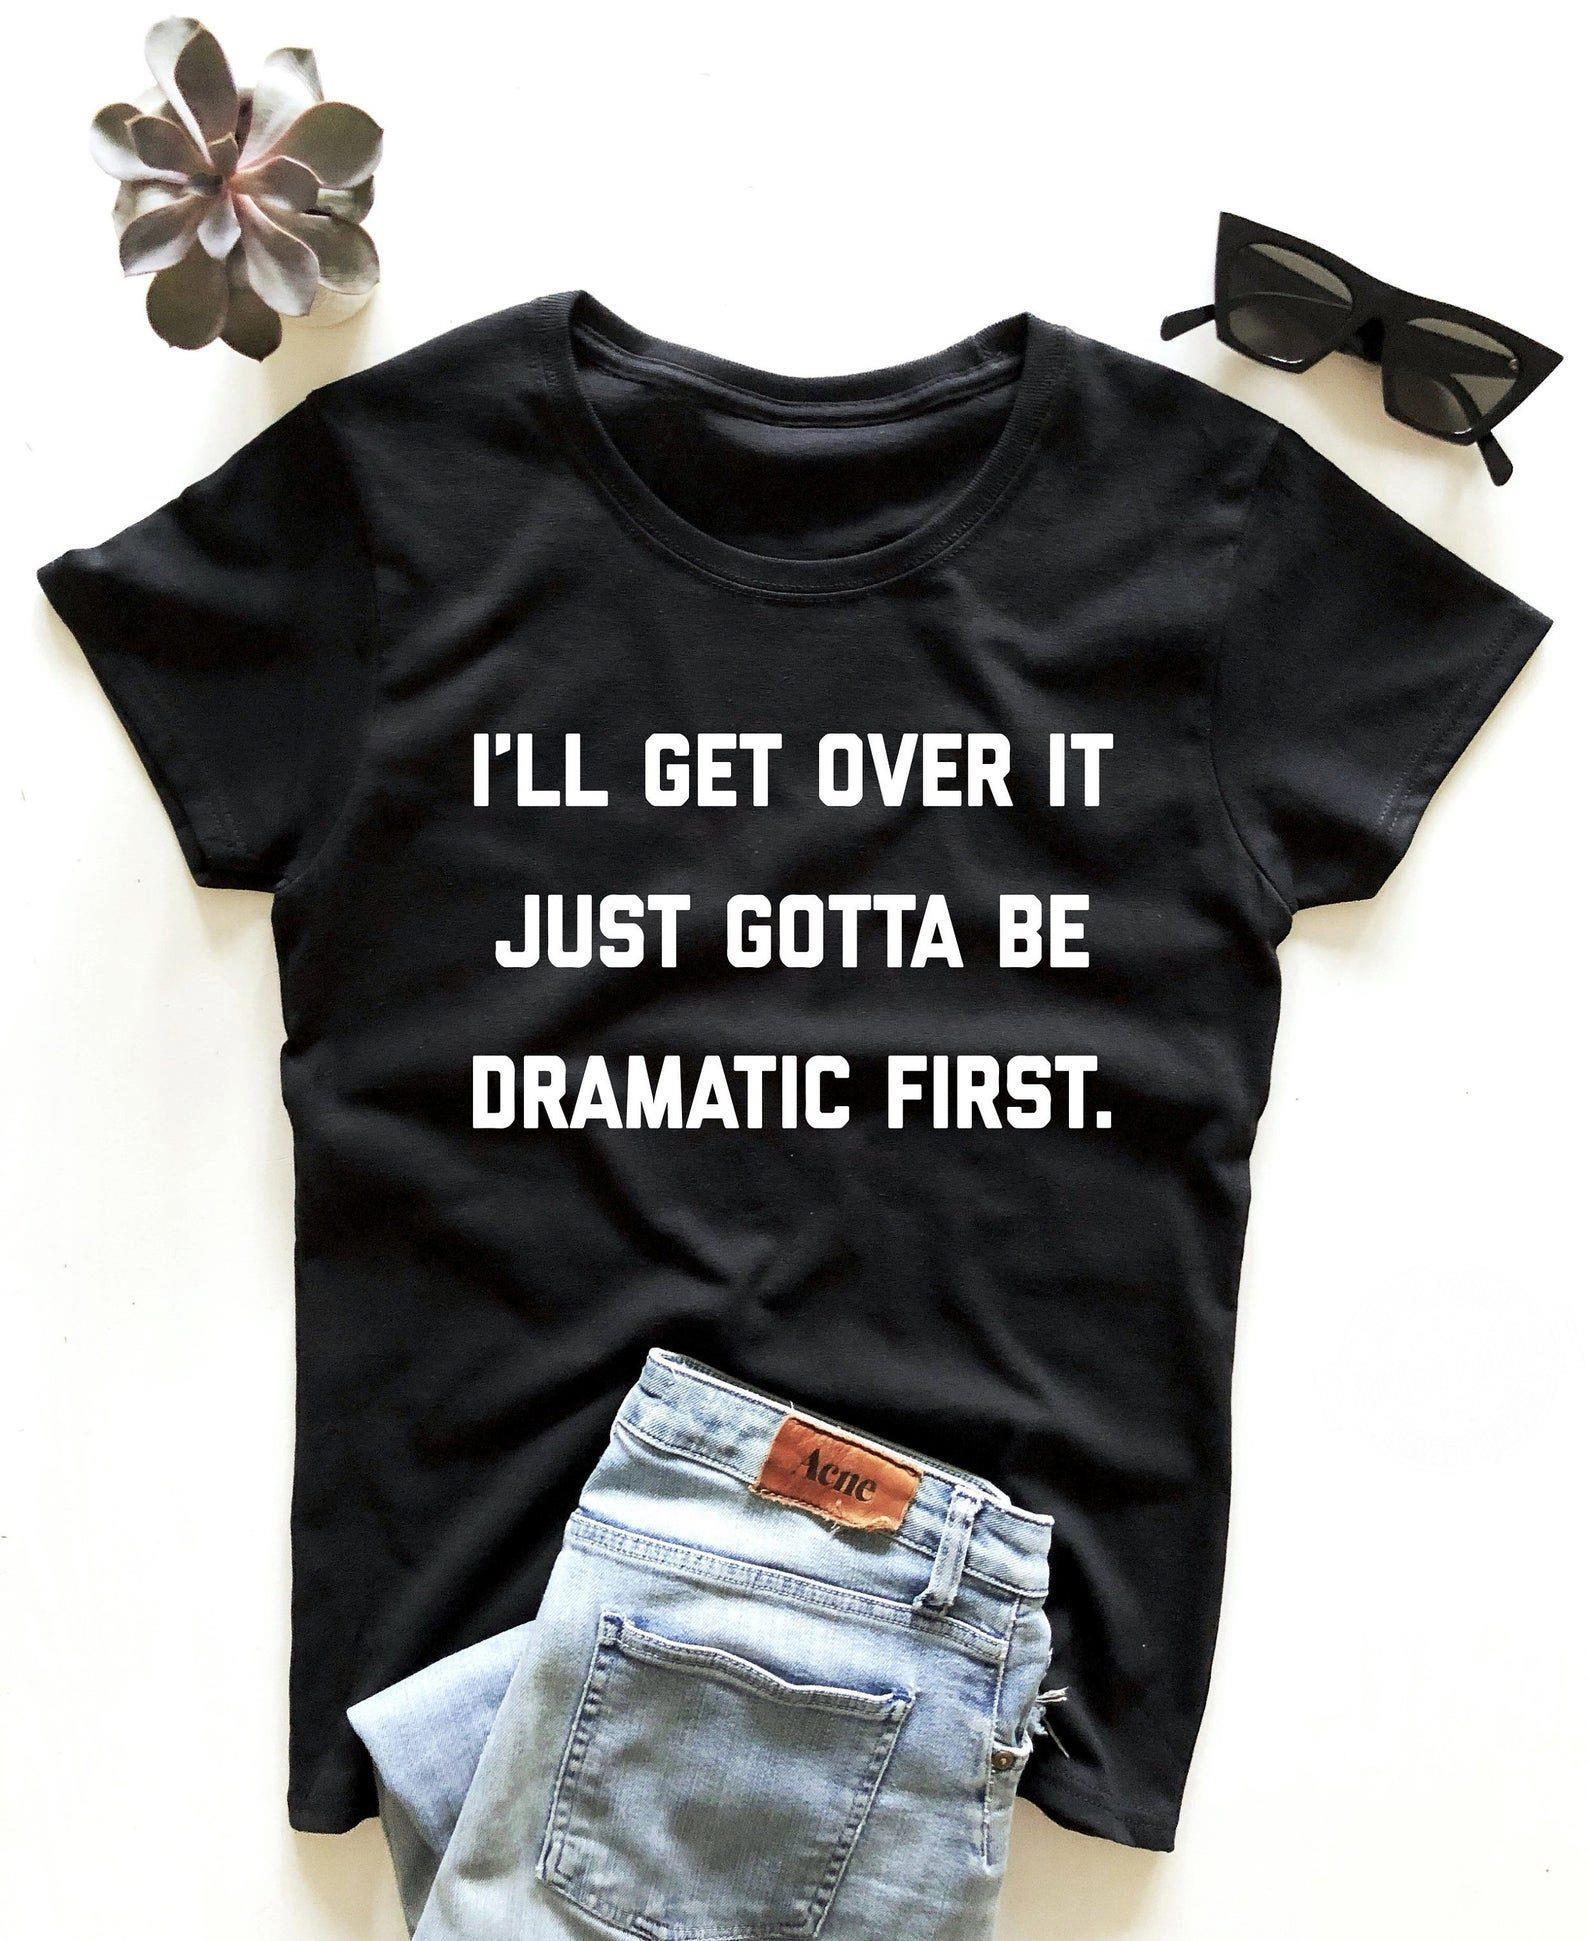 I'll get over it just gotta be dramatic first shirt